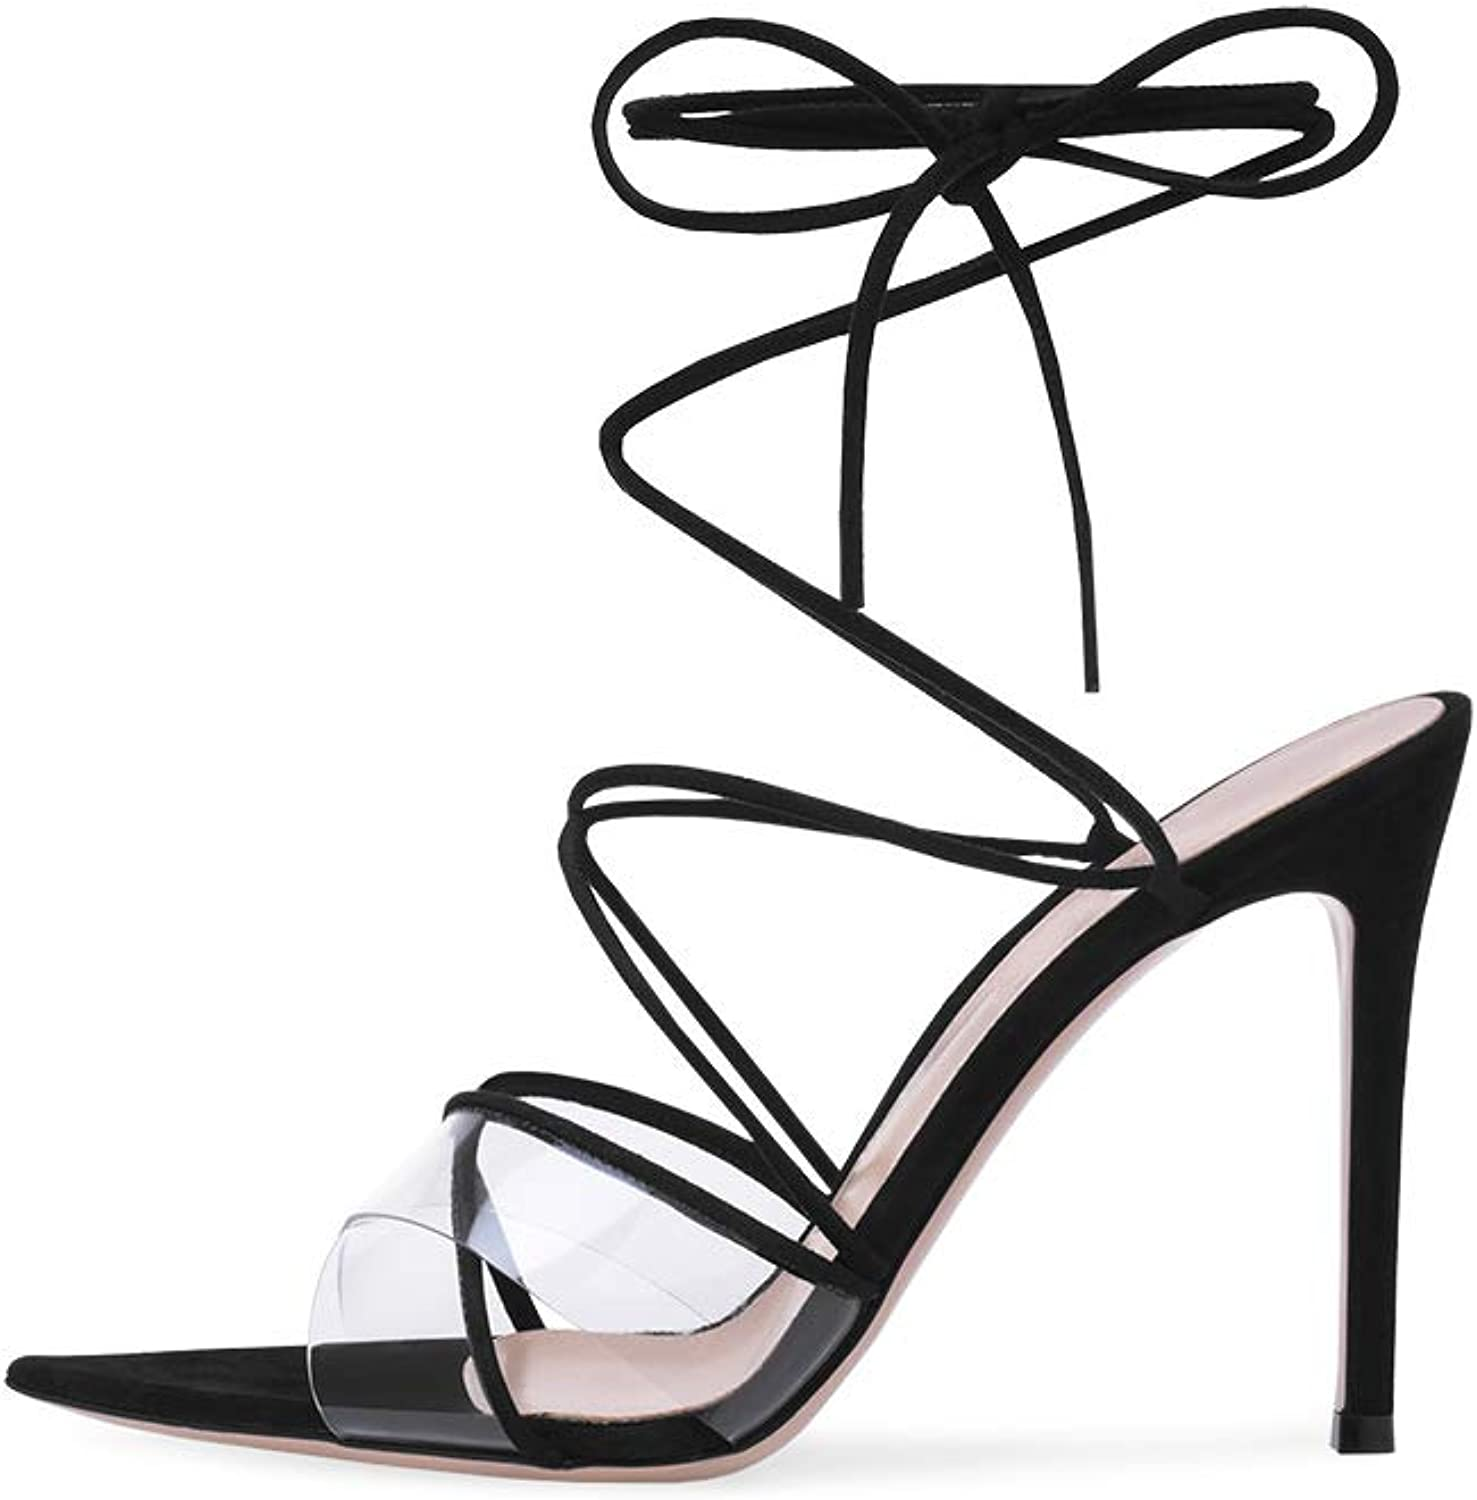 Womens Ankle Strap Sandals Stiletto High Heel shoes Transparent PVC Ladies Peeptoe Pointed Toe Strappy Party shoes 3-12